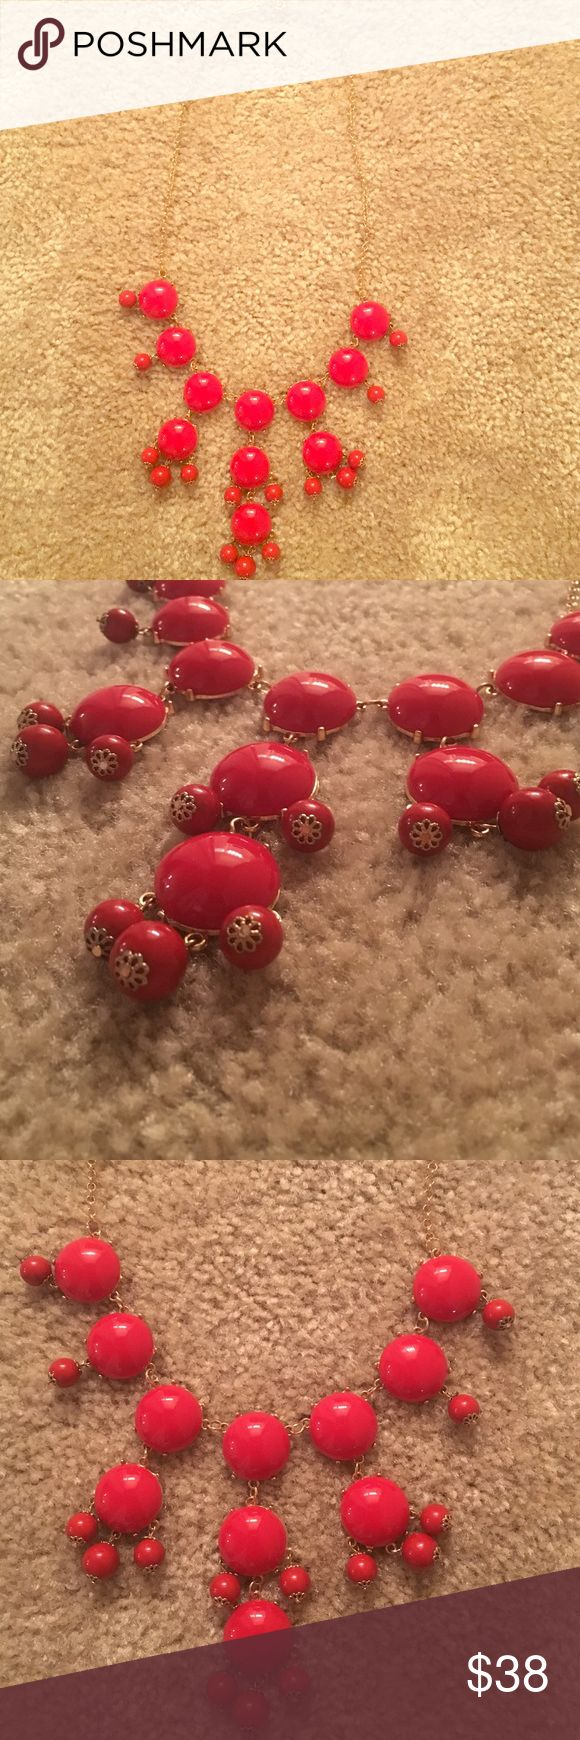 J. Crew red bubble necklace J. Crew red bubble necklace. Great condition! Amazing quality! Has adjustable clamps to adjust how long or short you want the necklace to be. The perfect statement necklace. Getting rid of because I have too many other colors that I wear more often in the necklace. J. Crew Jewelry Necklaces